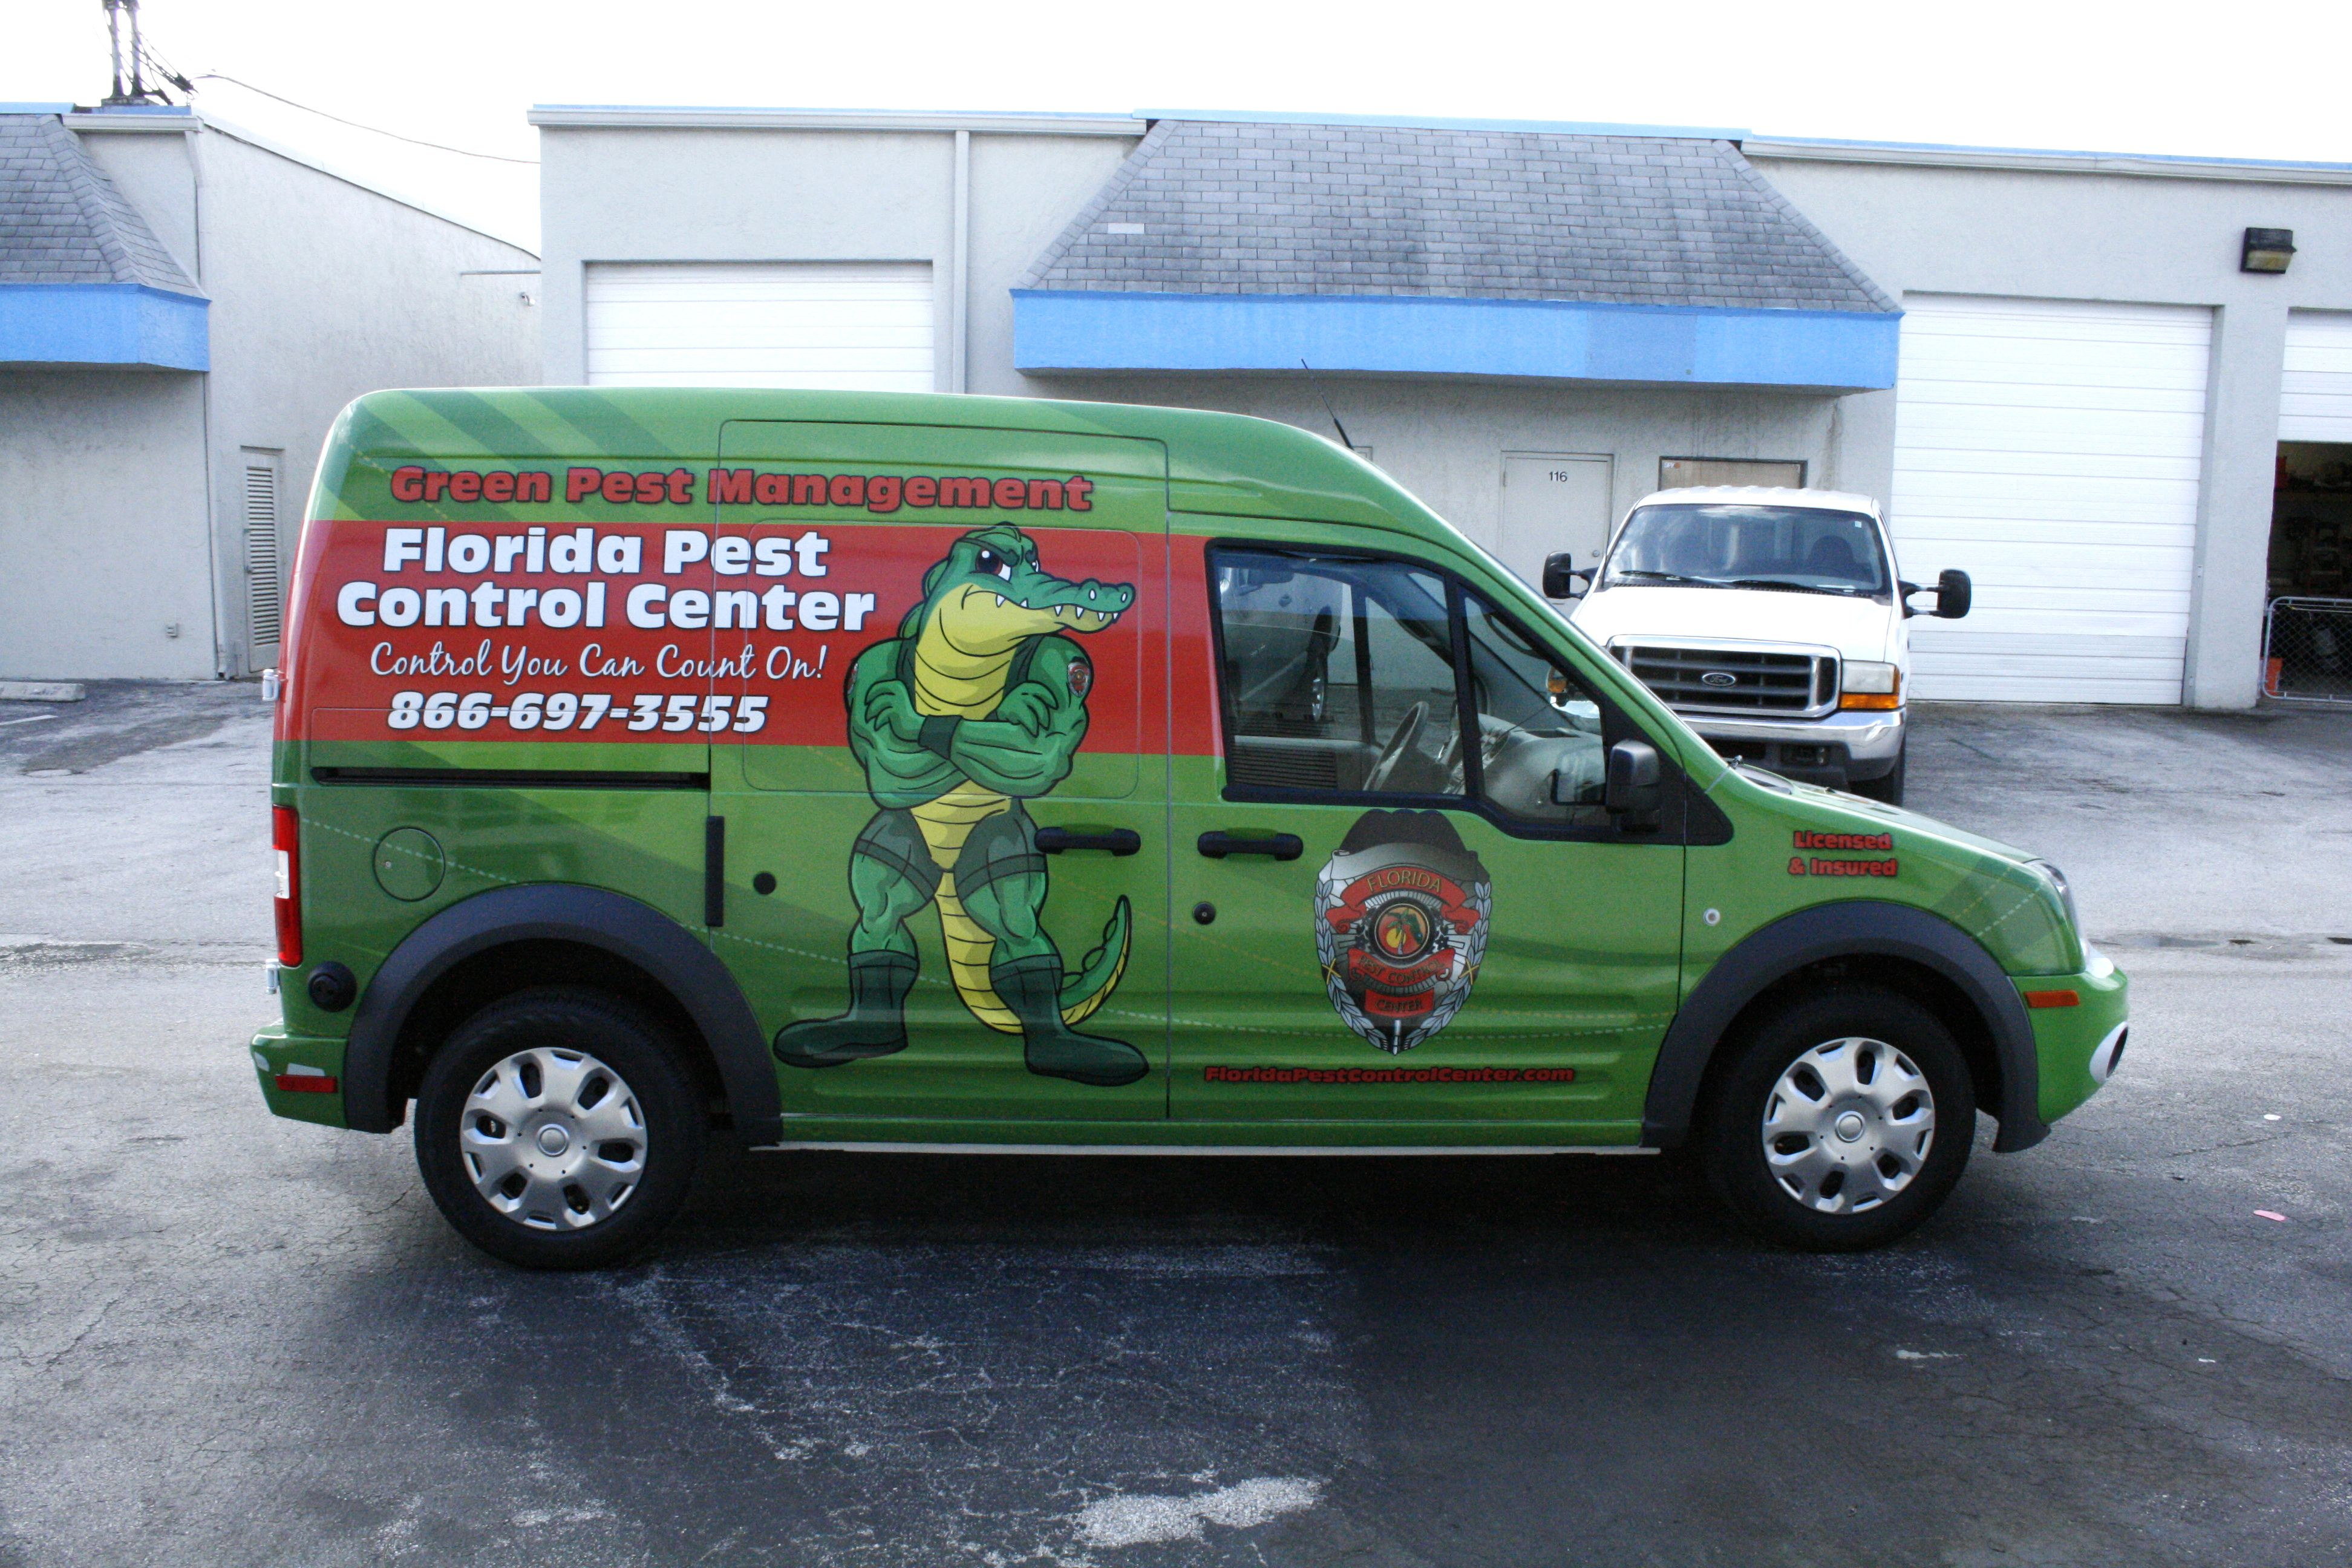 Fort lauderdale ford transit connect 3m vinyl wrap http www carwrapsolutions